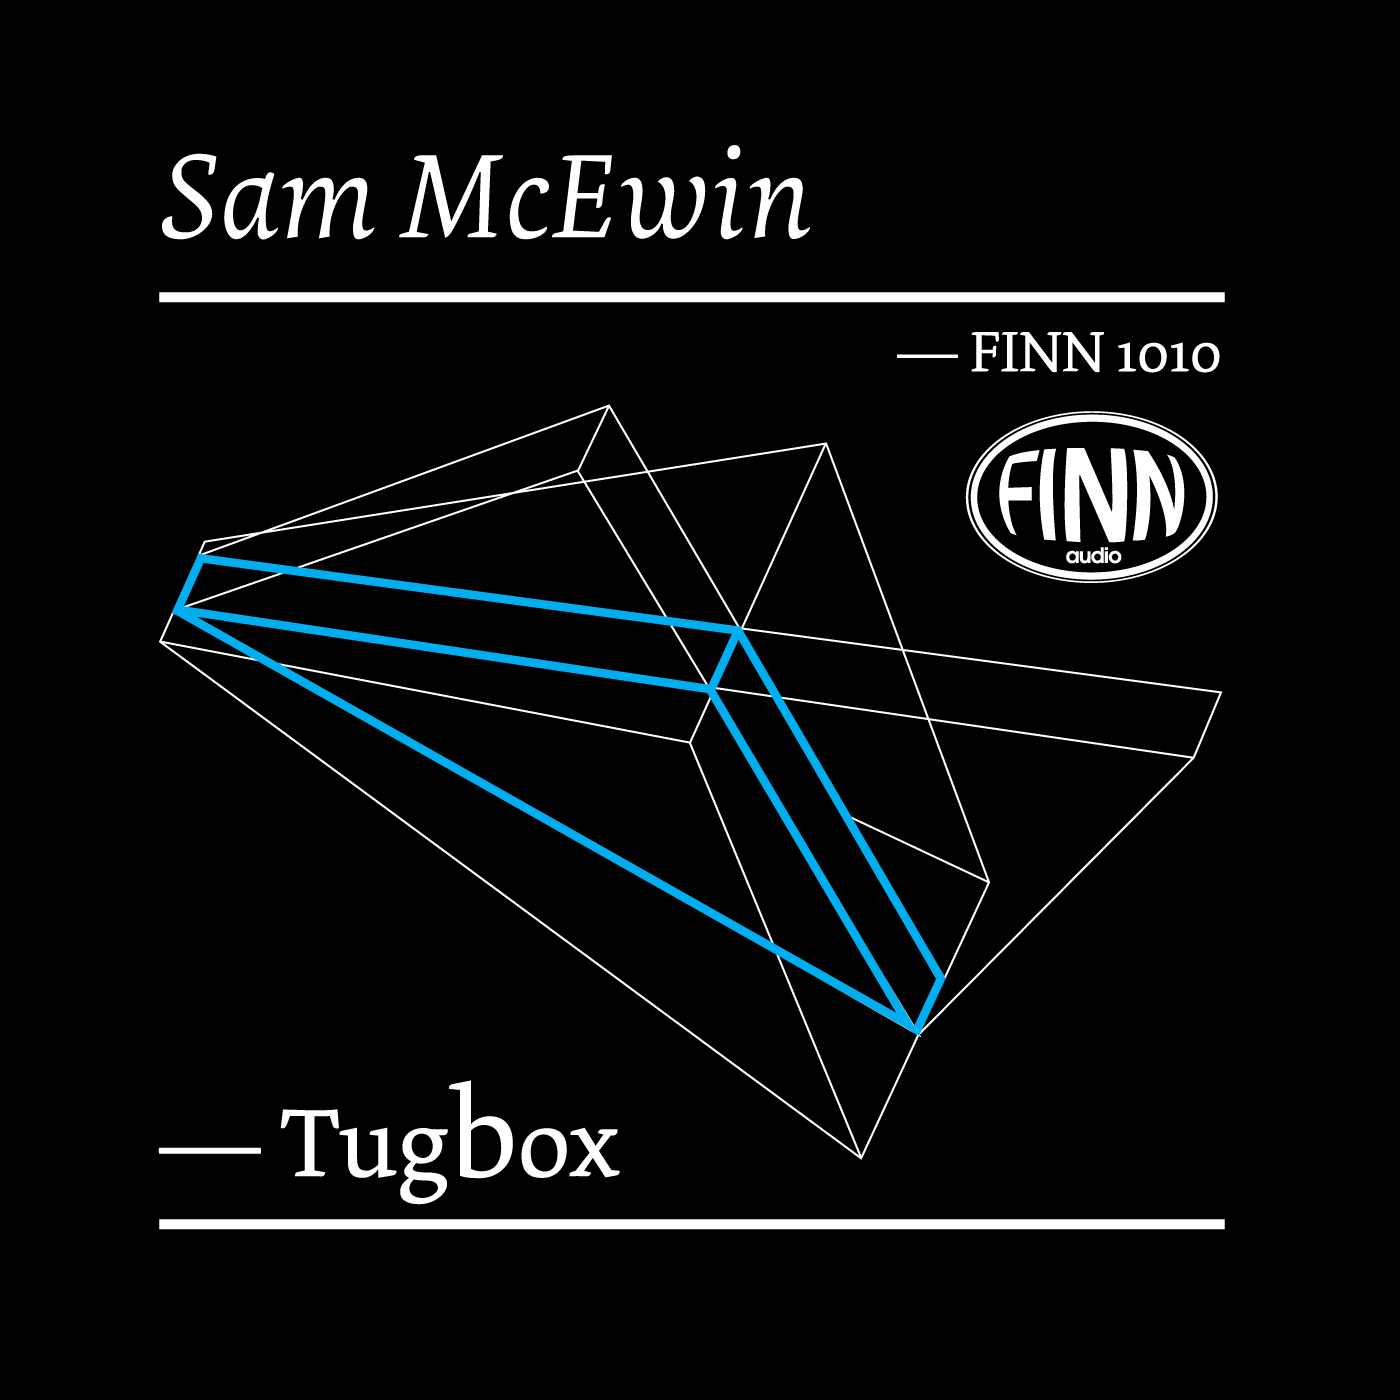 Tugboat - Sam McEwin